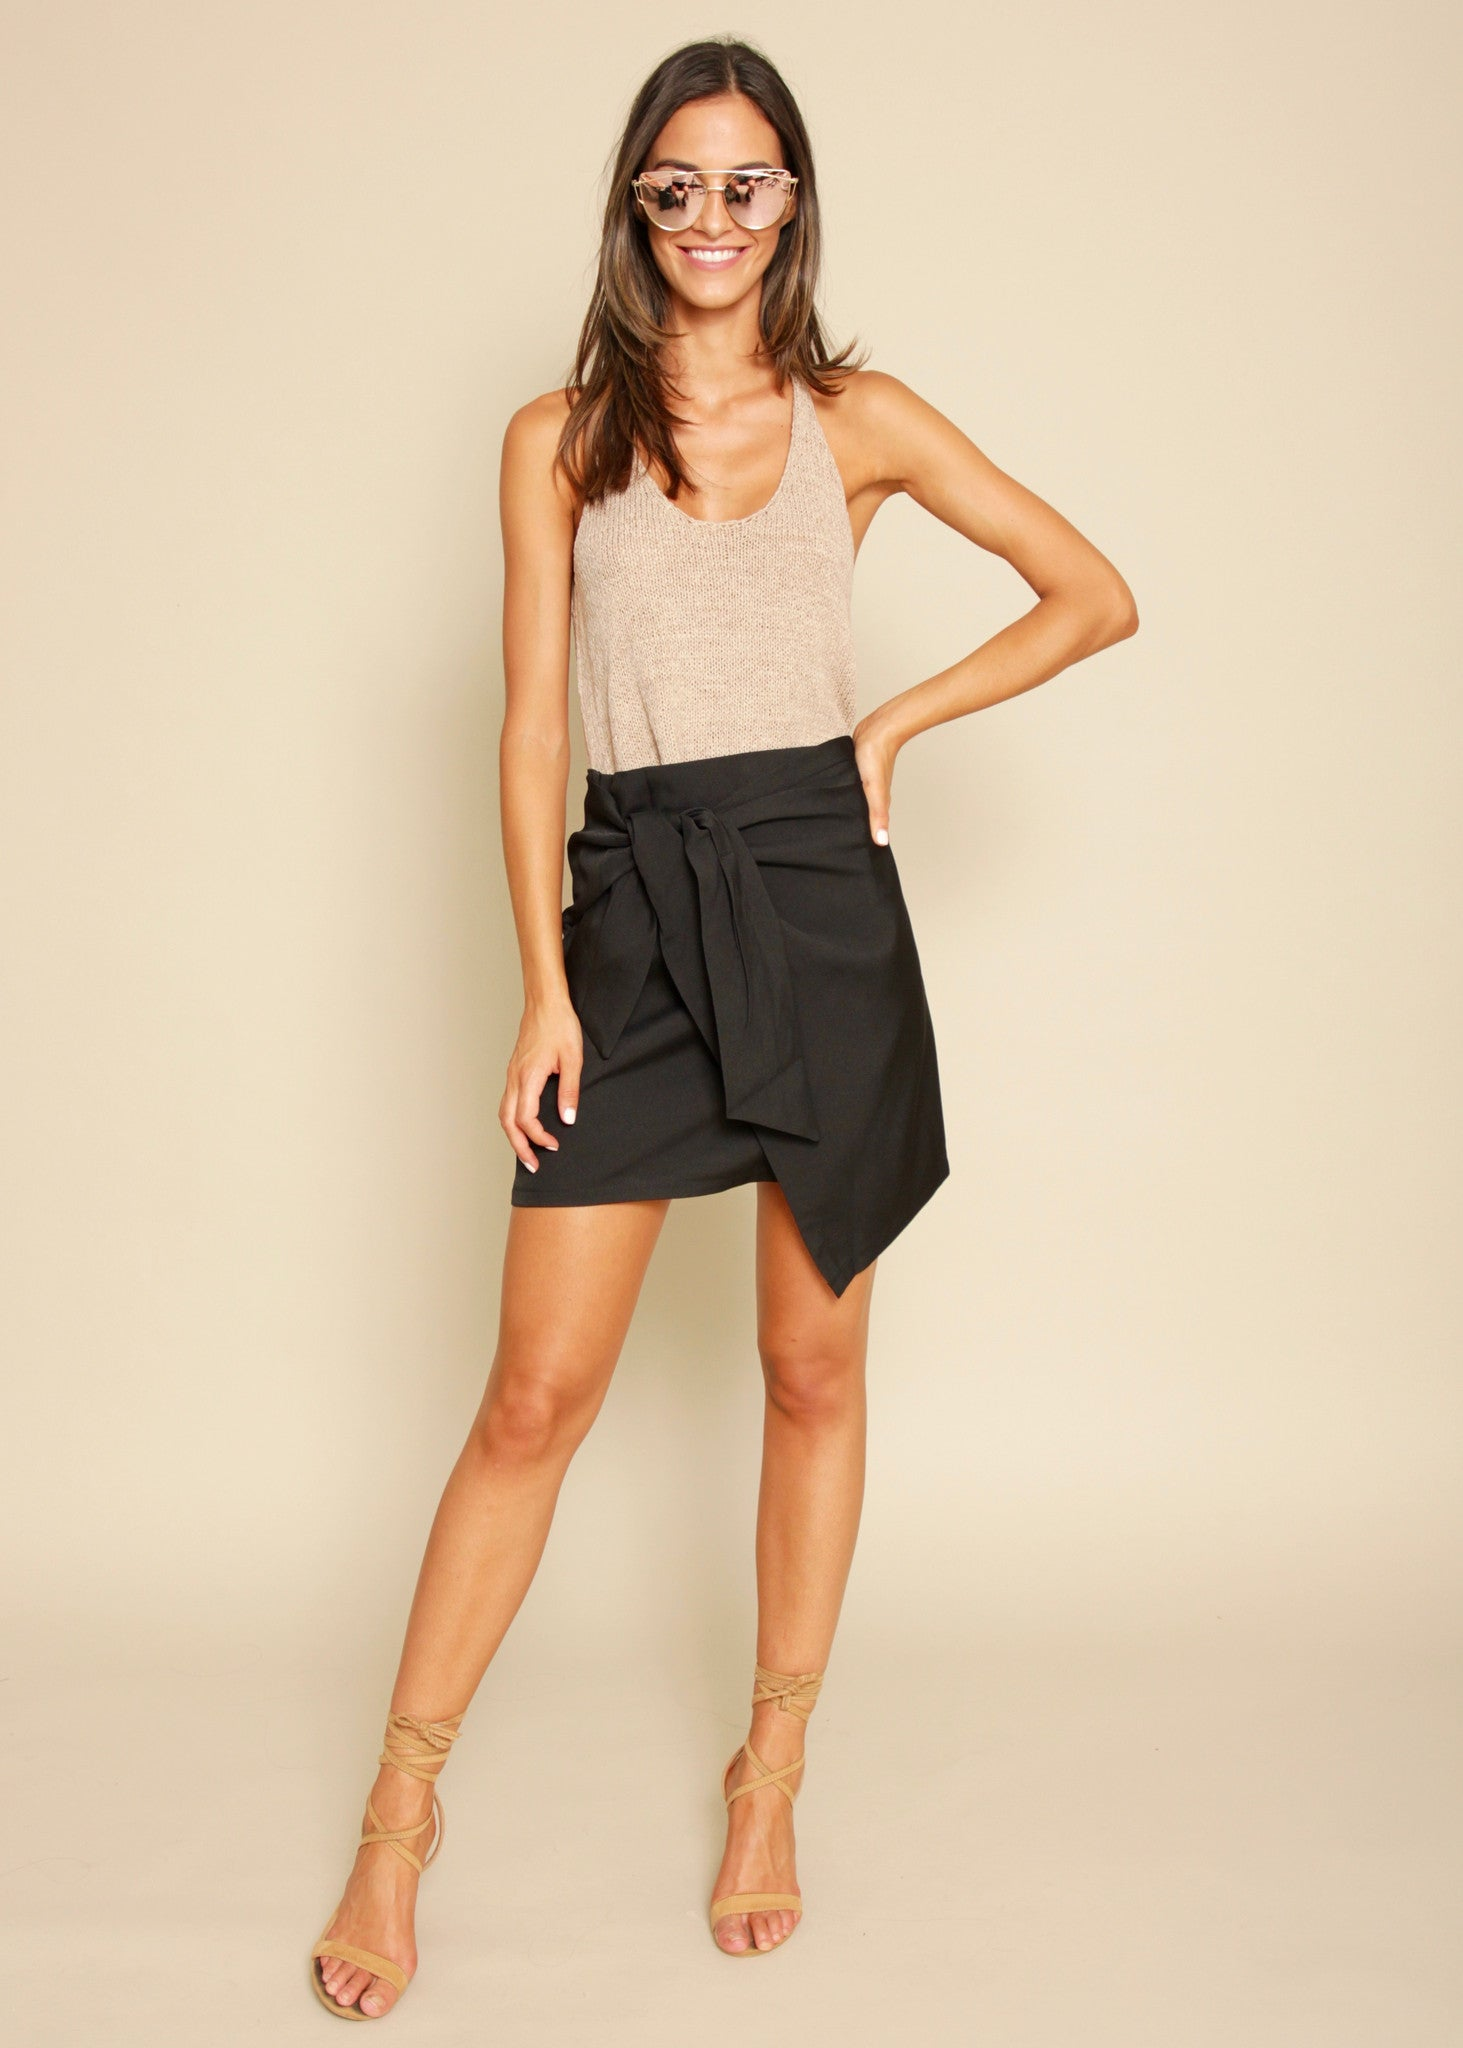 Night Fever Wrap Skirt - Black